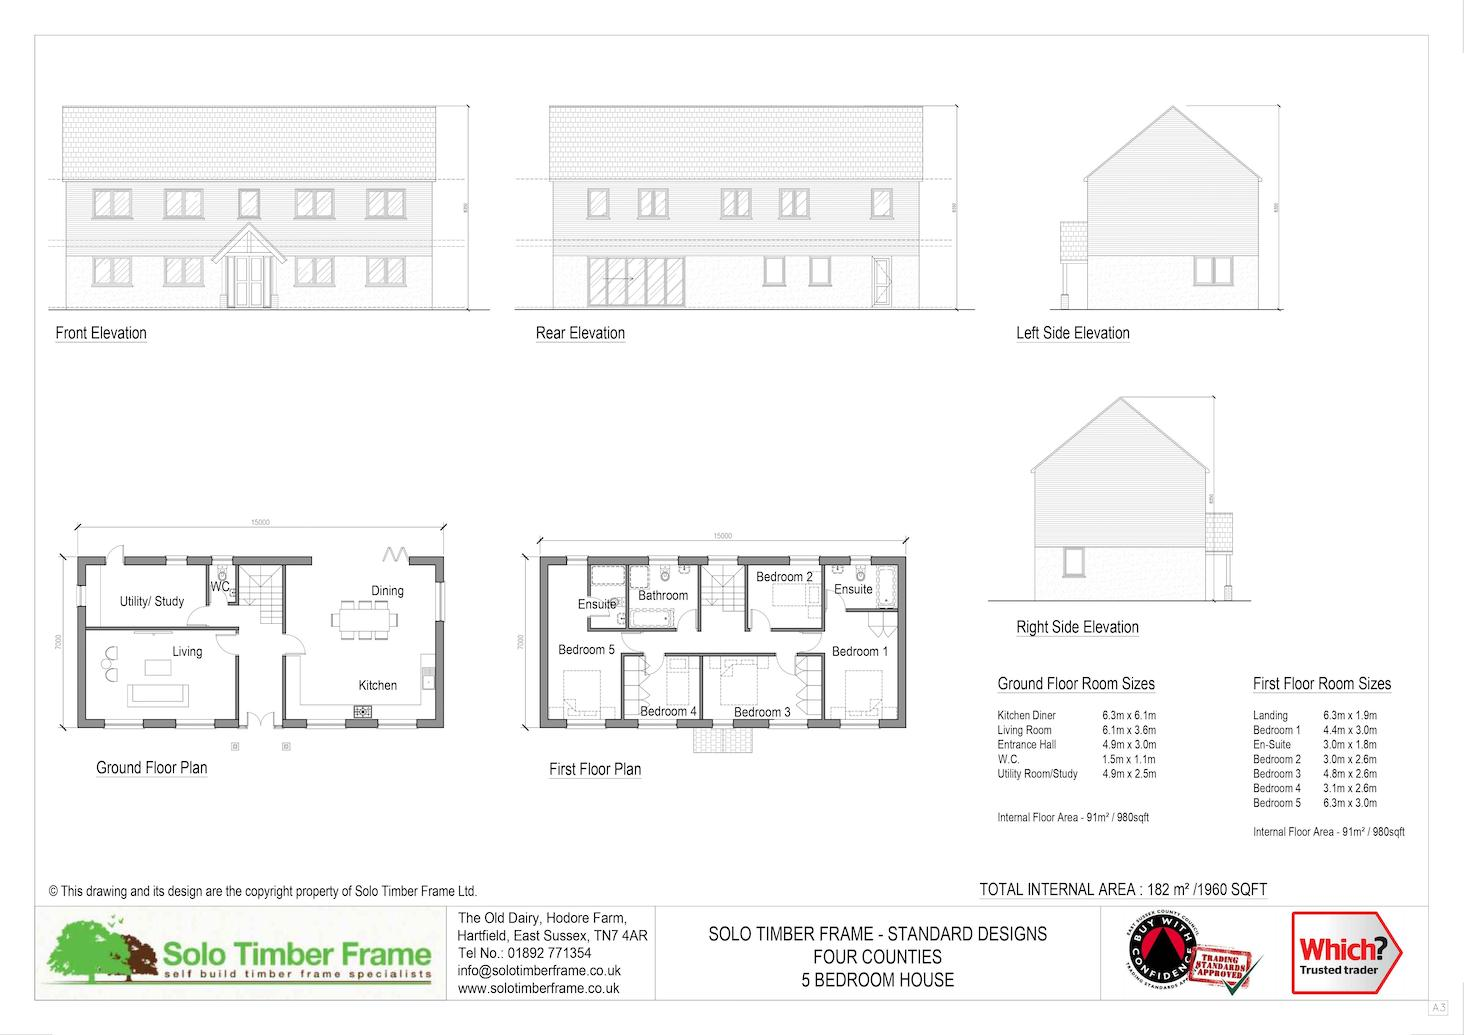 Four Counties 5 Bedroom House Design